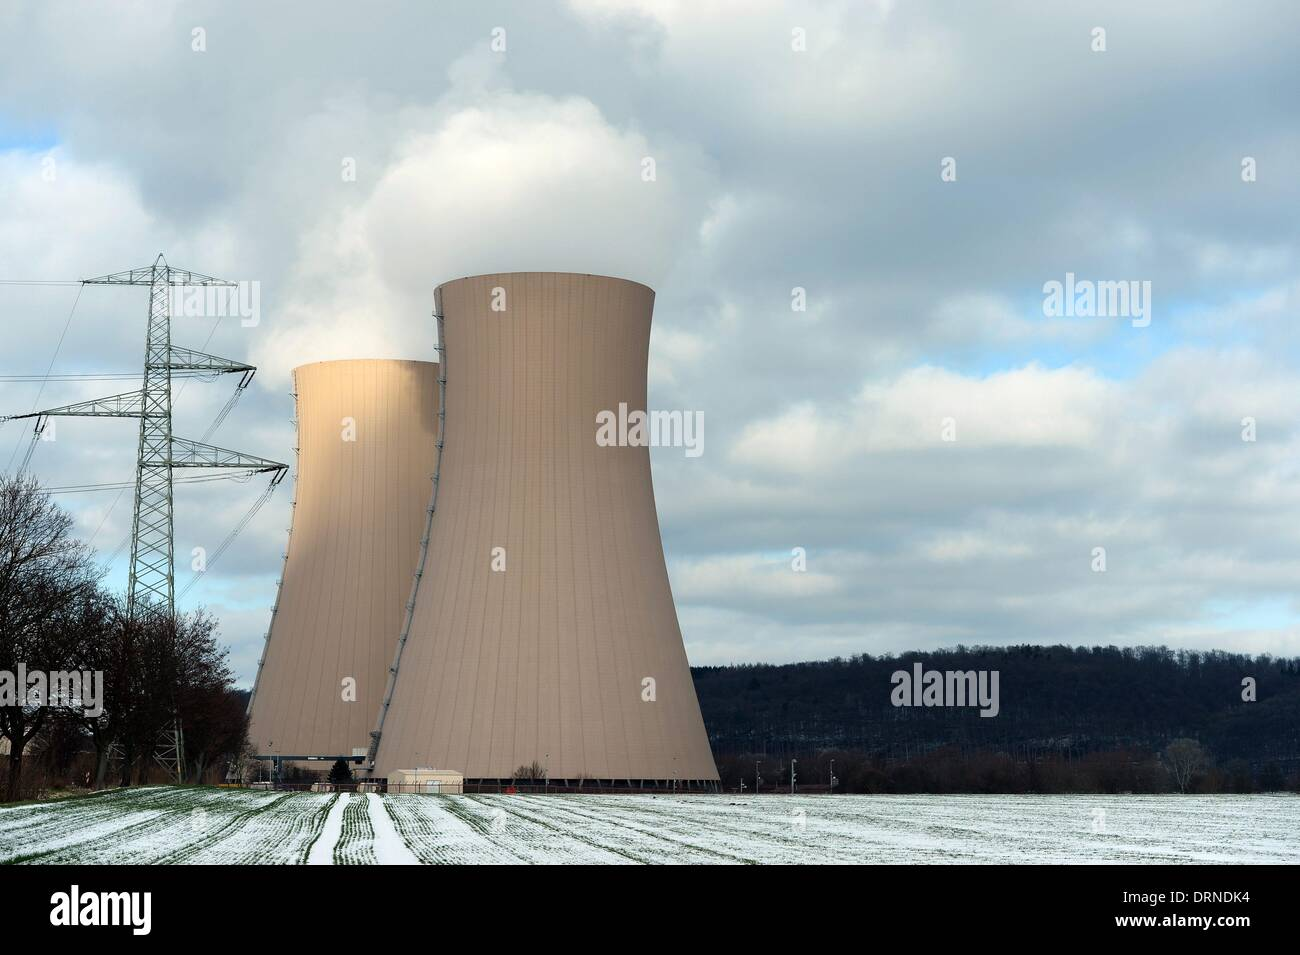 Nuclear power plant in Germany near Grohnde, 28. January 2014. Photo: Frank May - Stock Image